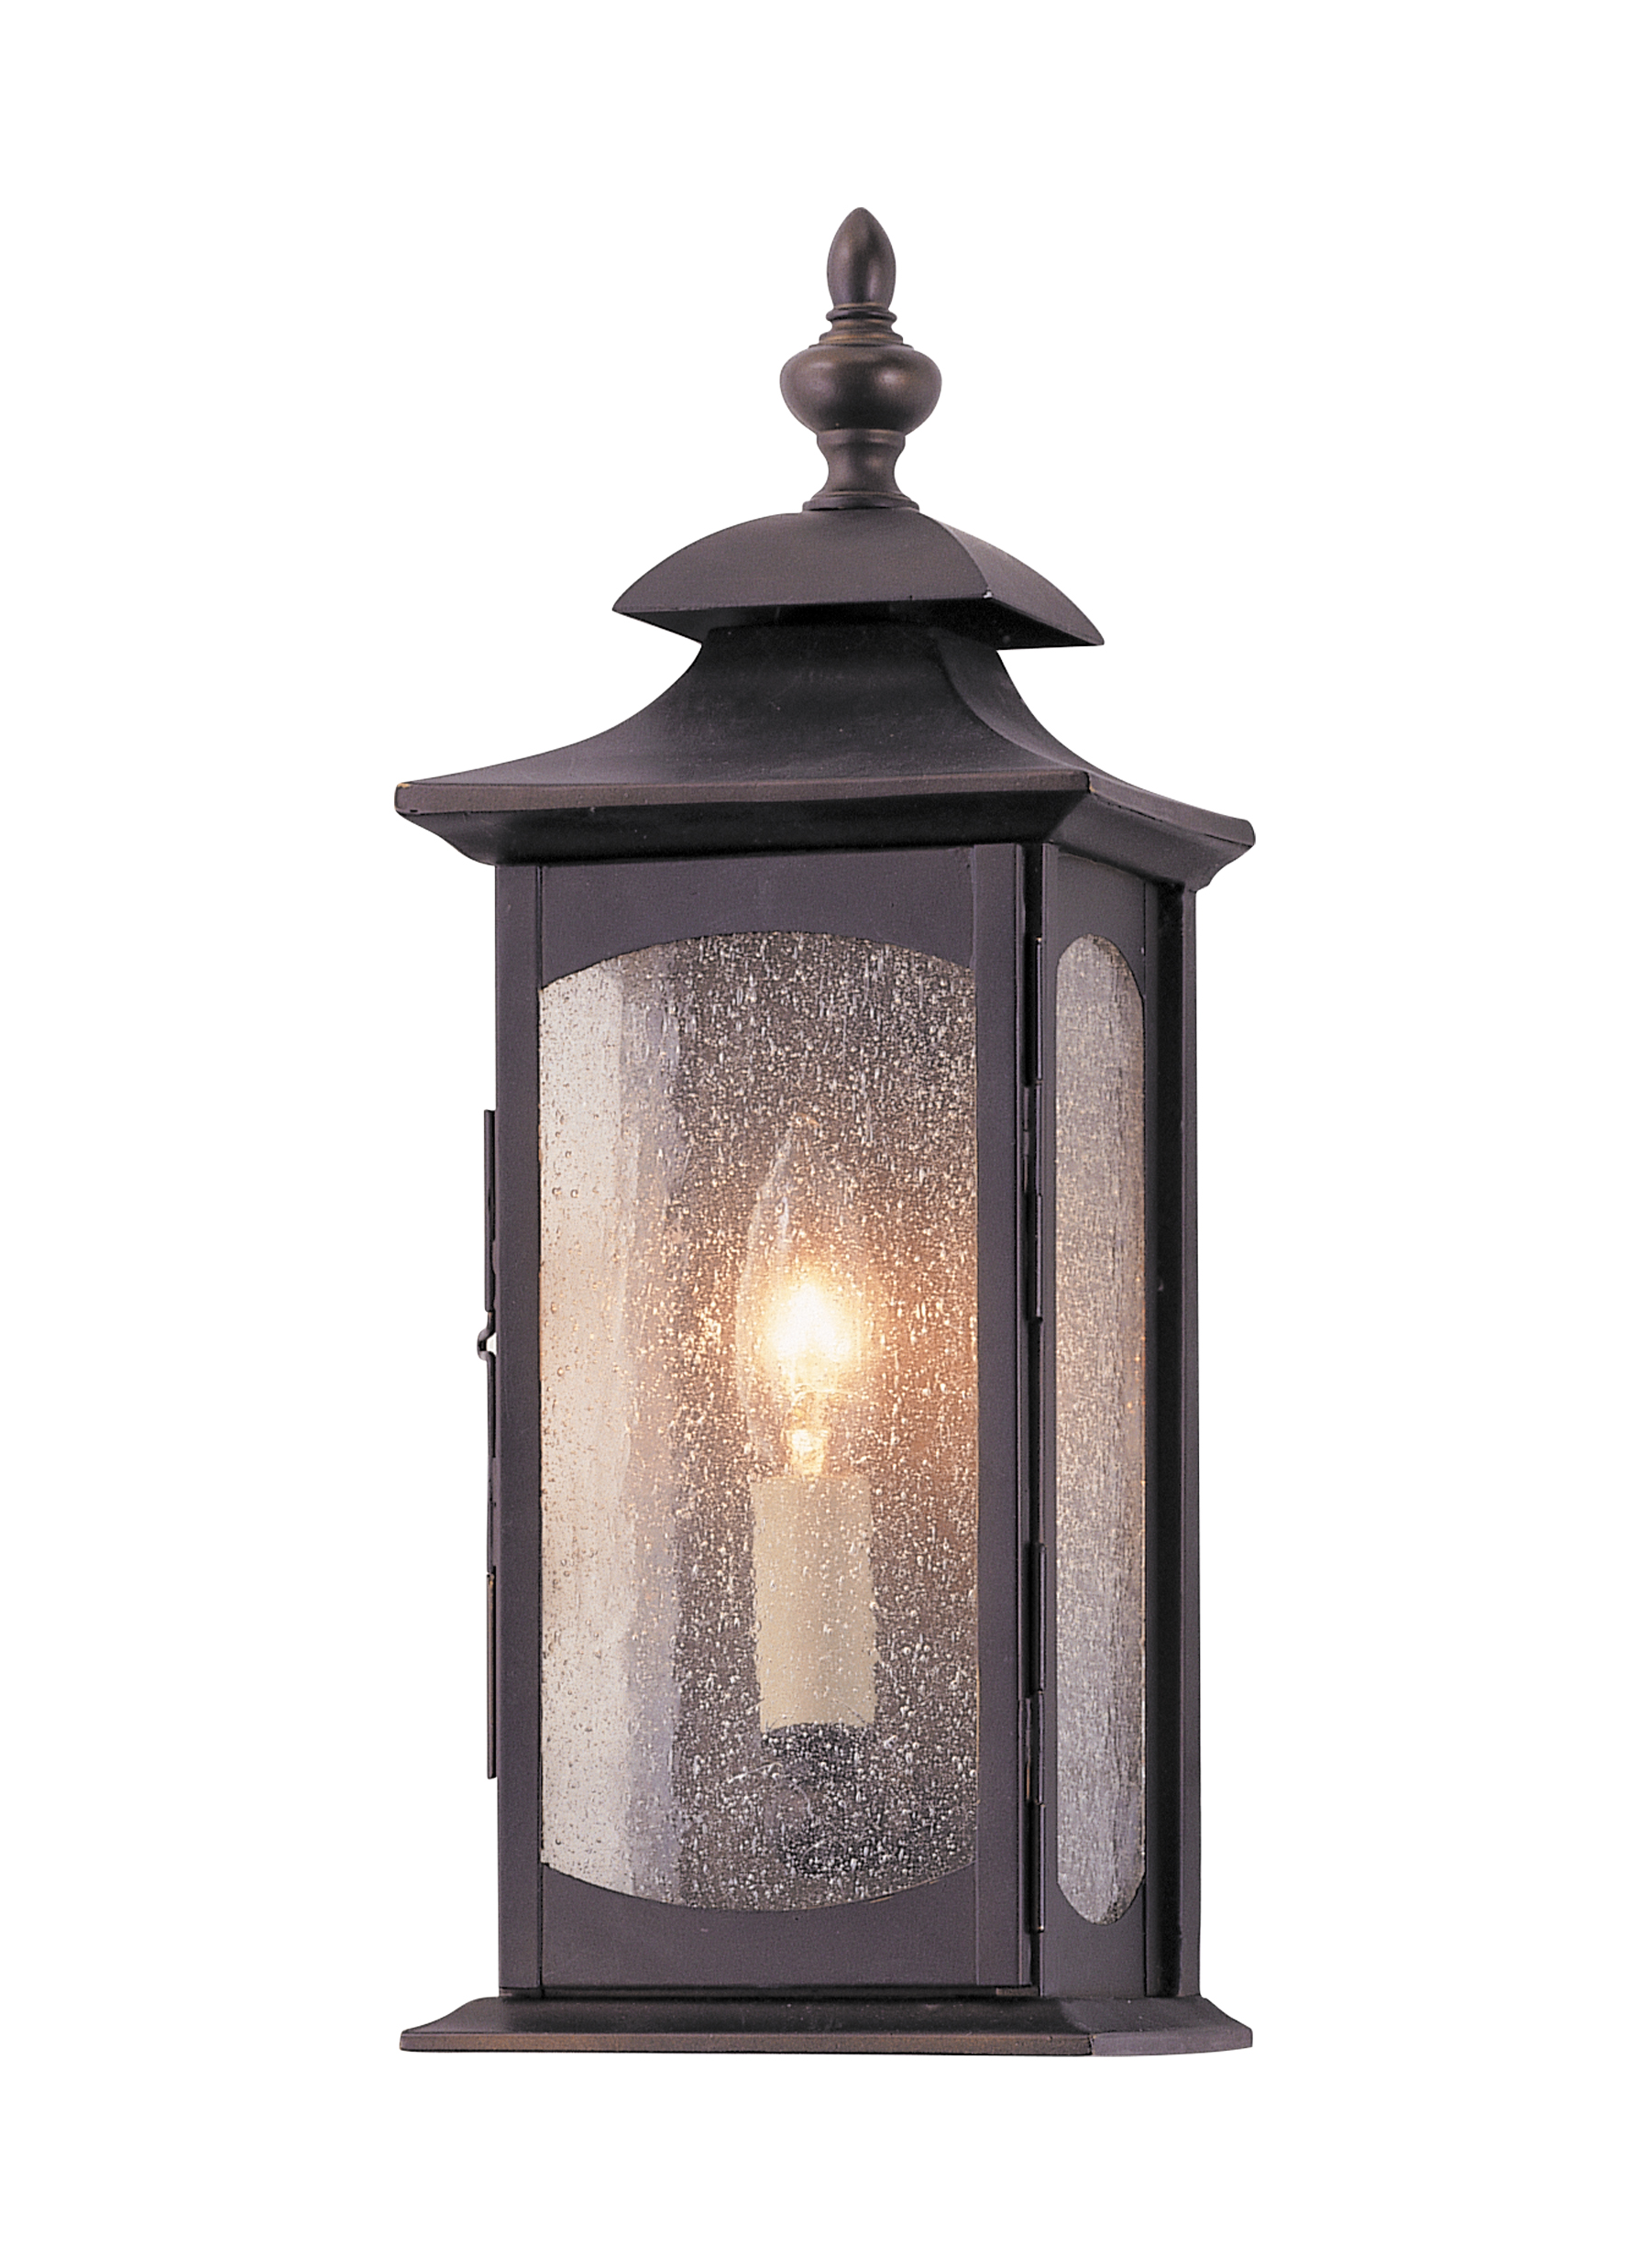 Oil Rubbed Bronze Wall Sconce Option Style 1 - LIGHT WALL LANTERN. Oil Rubbed Bronze. STYLE NO.